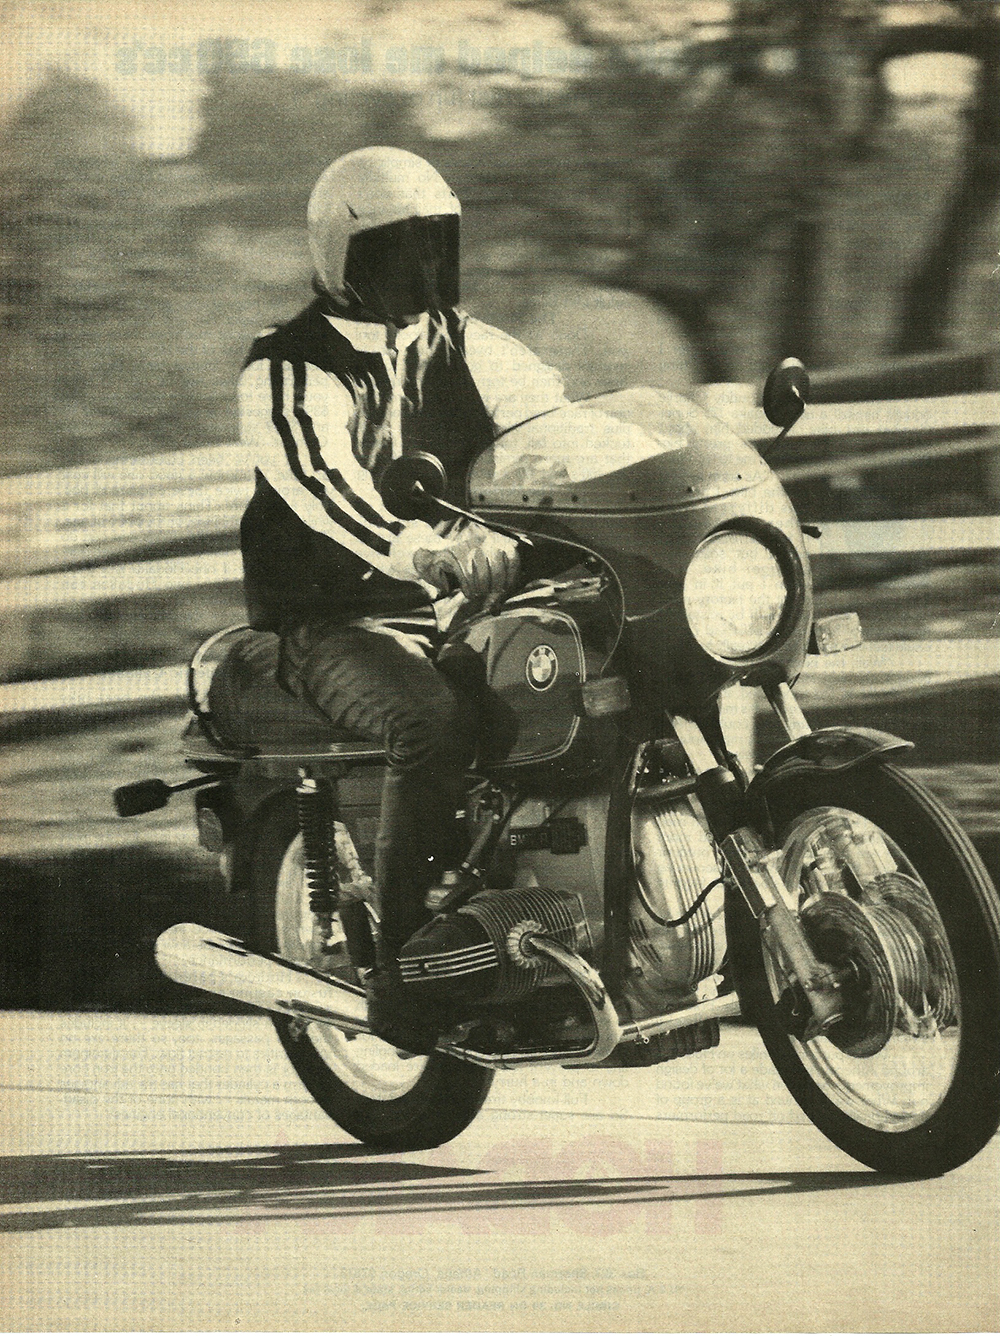 1977 BMW R100S road test 1.jpg